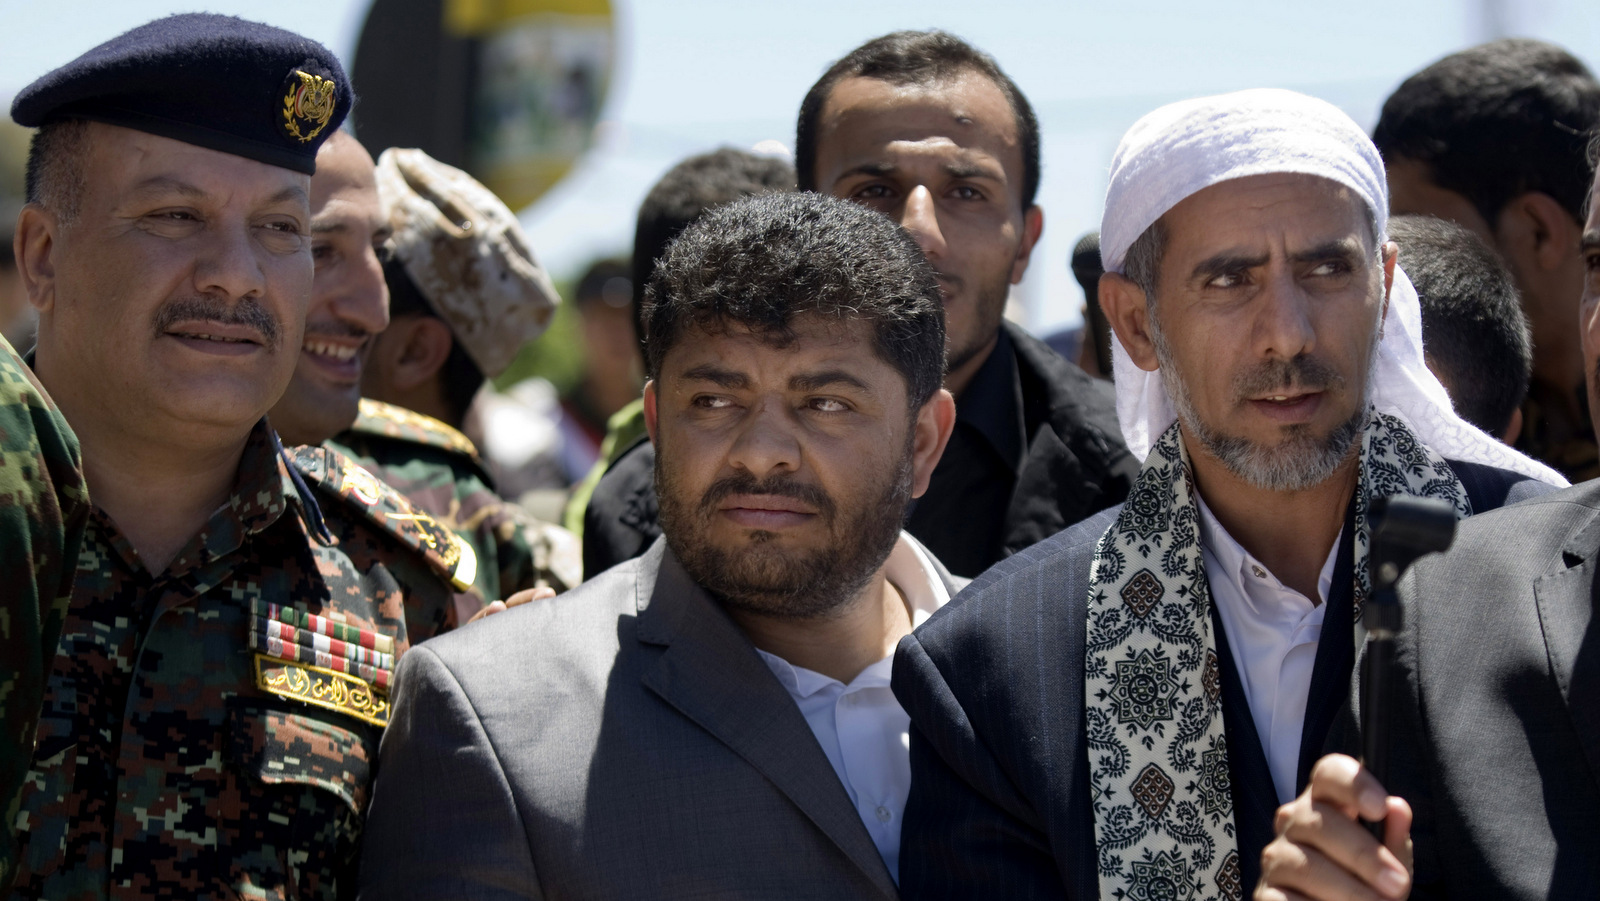 Mohammed Ali al-Houthi, who heads the Houthi rebels' powerful Revolutionary Council, center, attends the funeral procession of victims who were killed from triple suicide bombing attacks that hit a pair of mosques in Sanaa, Yemen.(AP/Hani Mohammed)